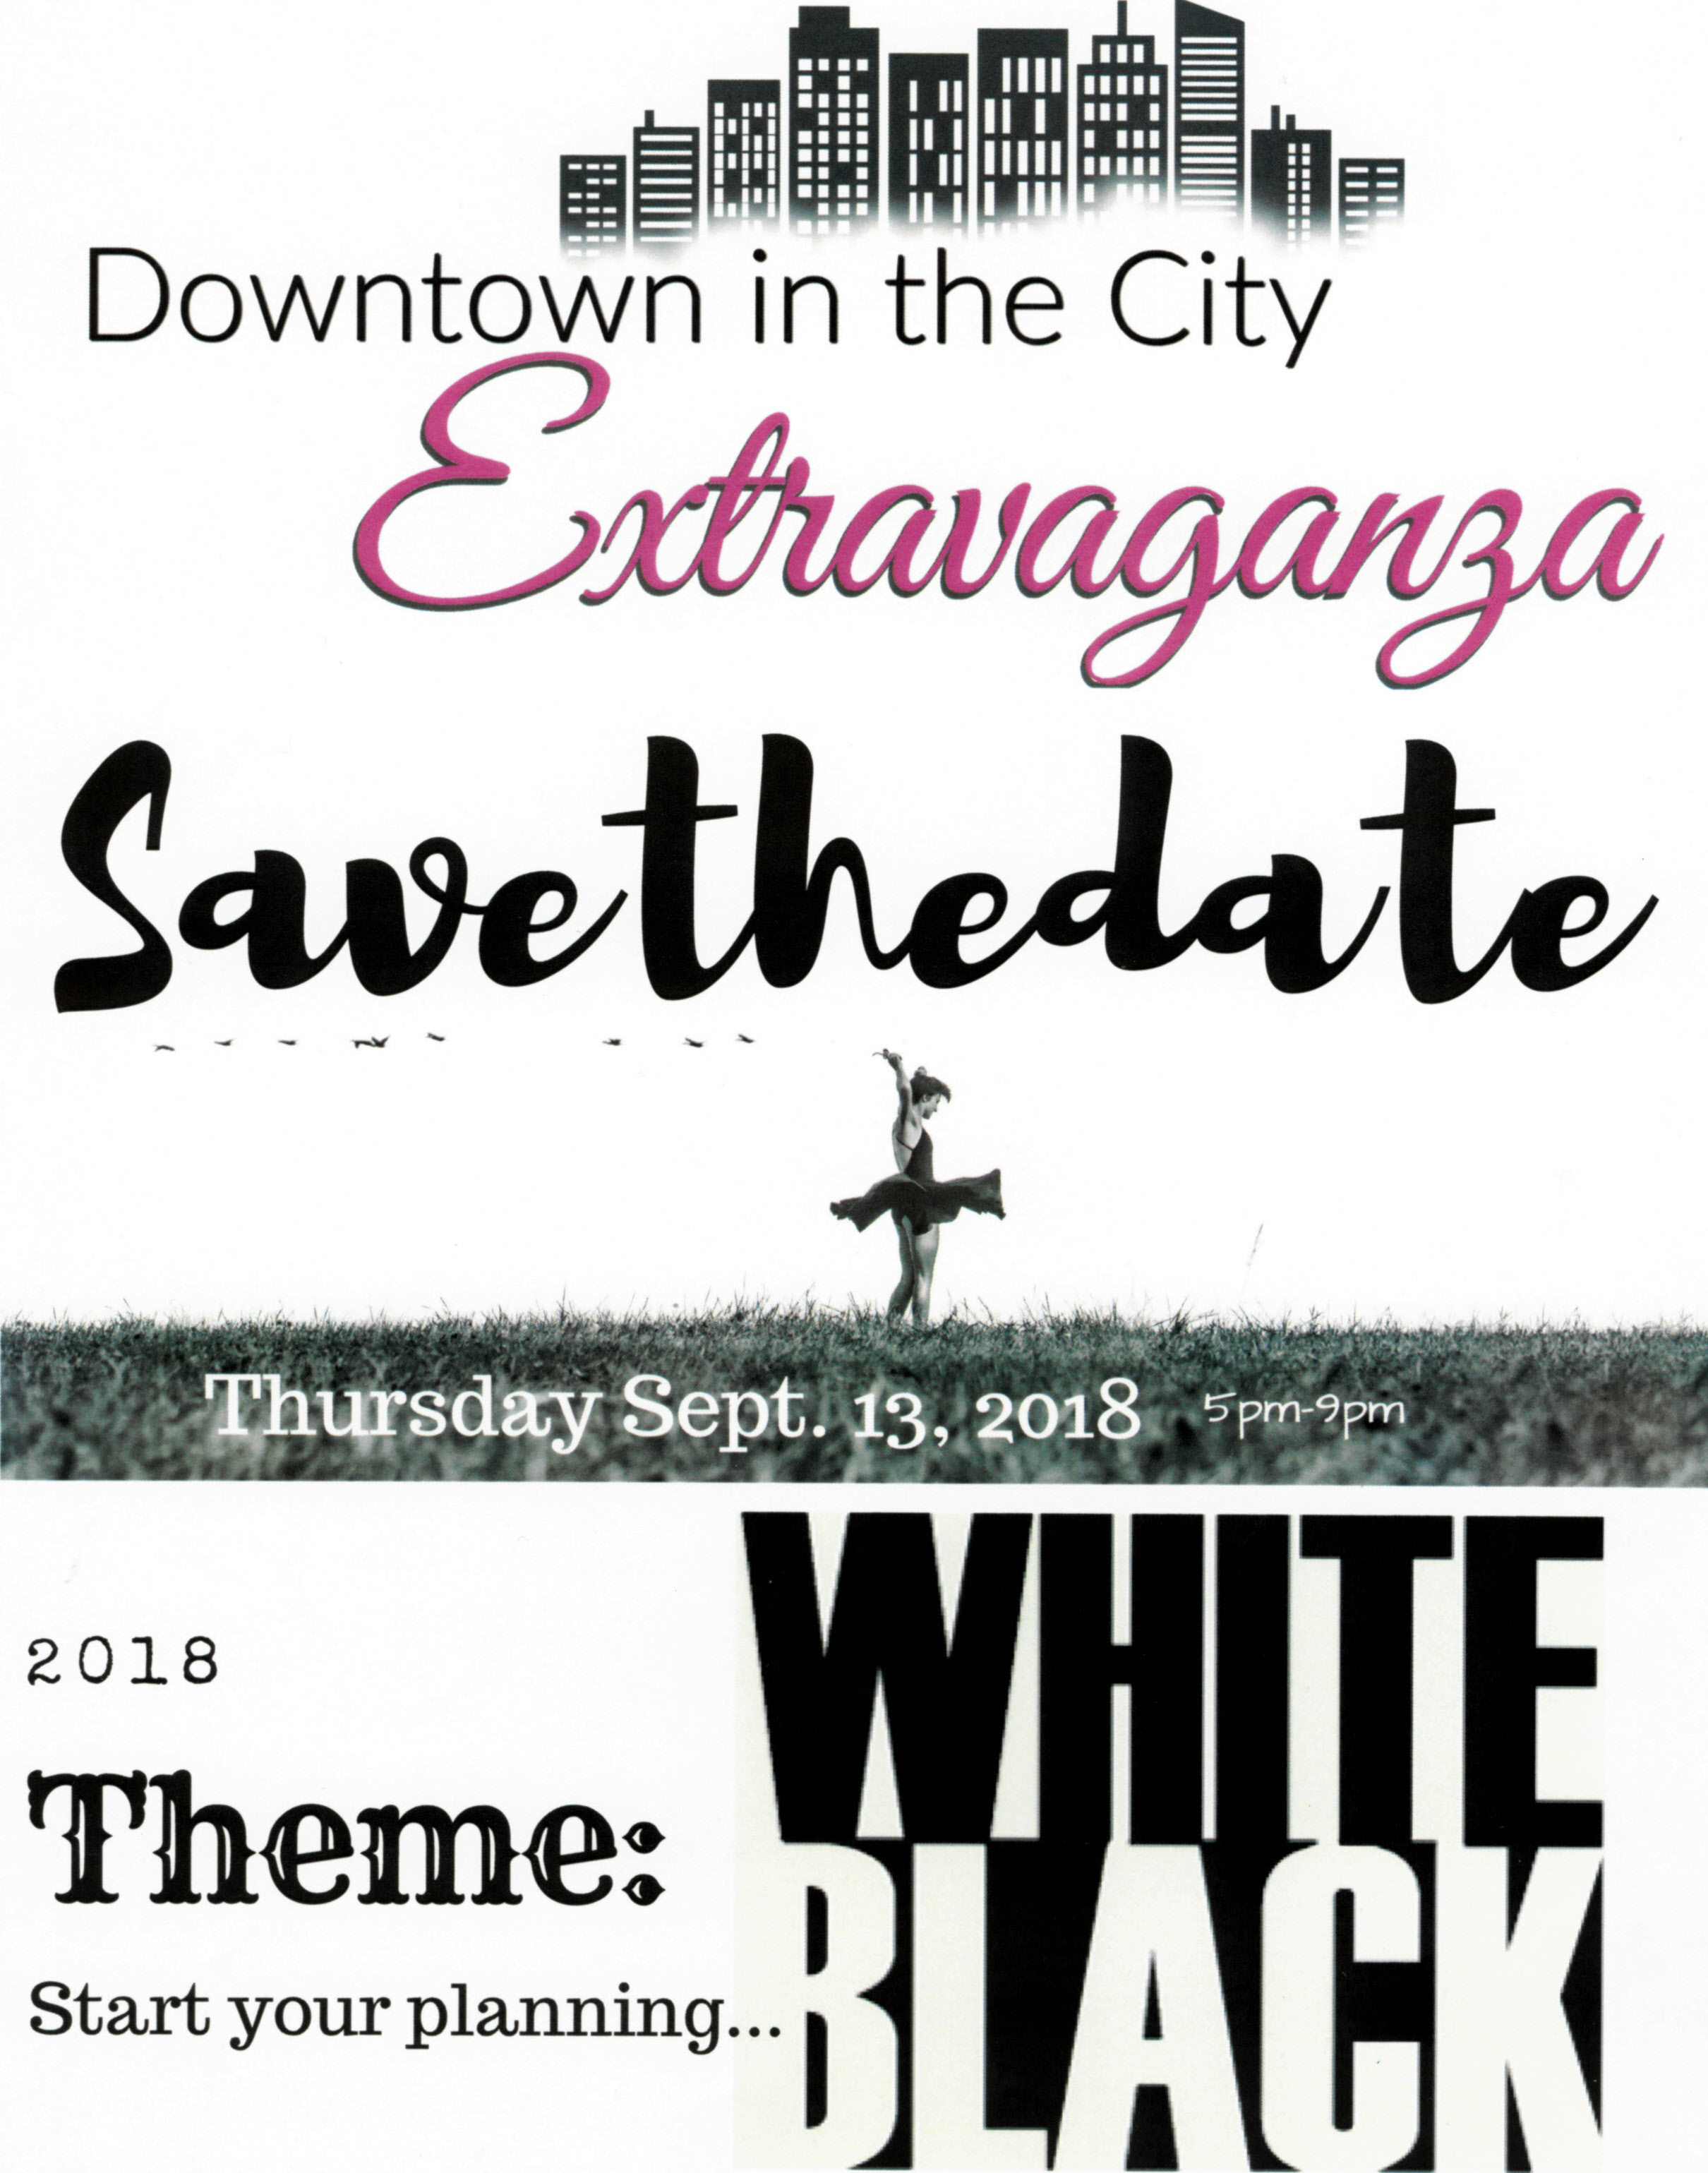 Save Date poster